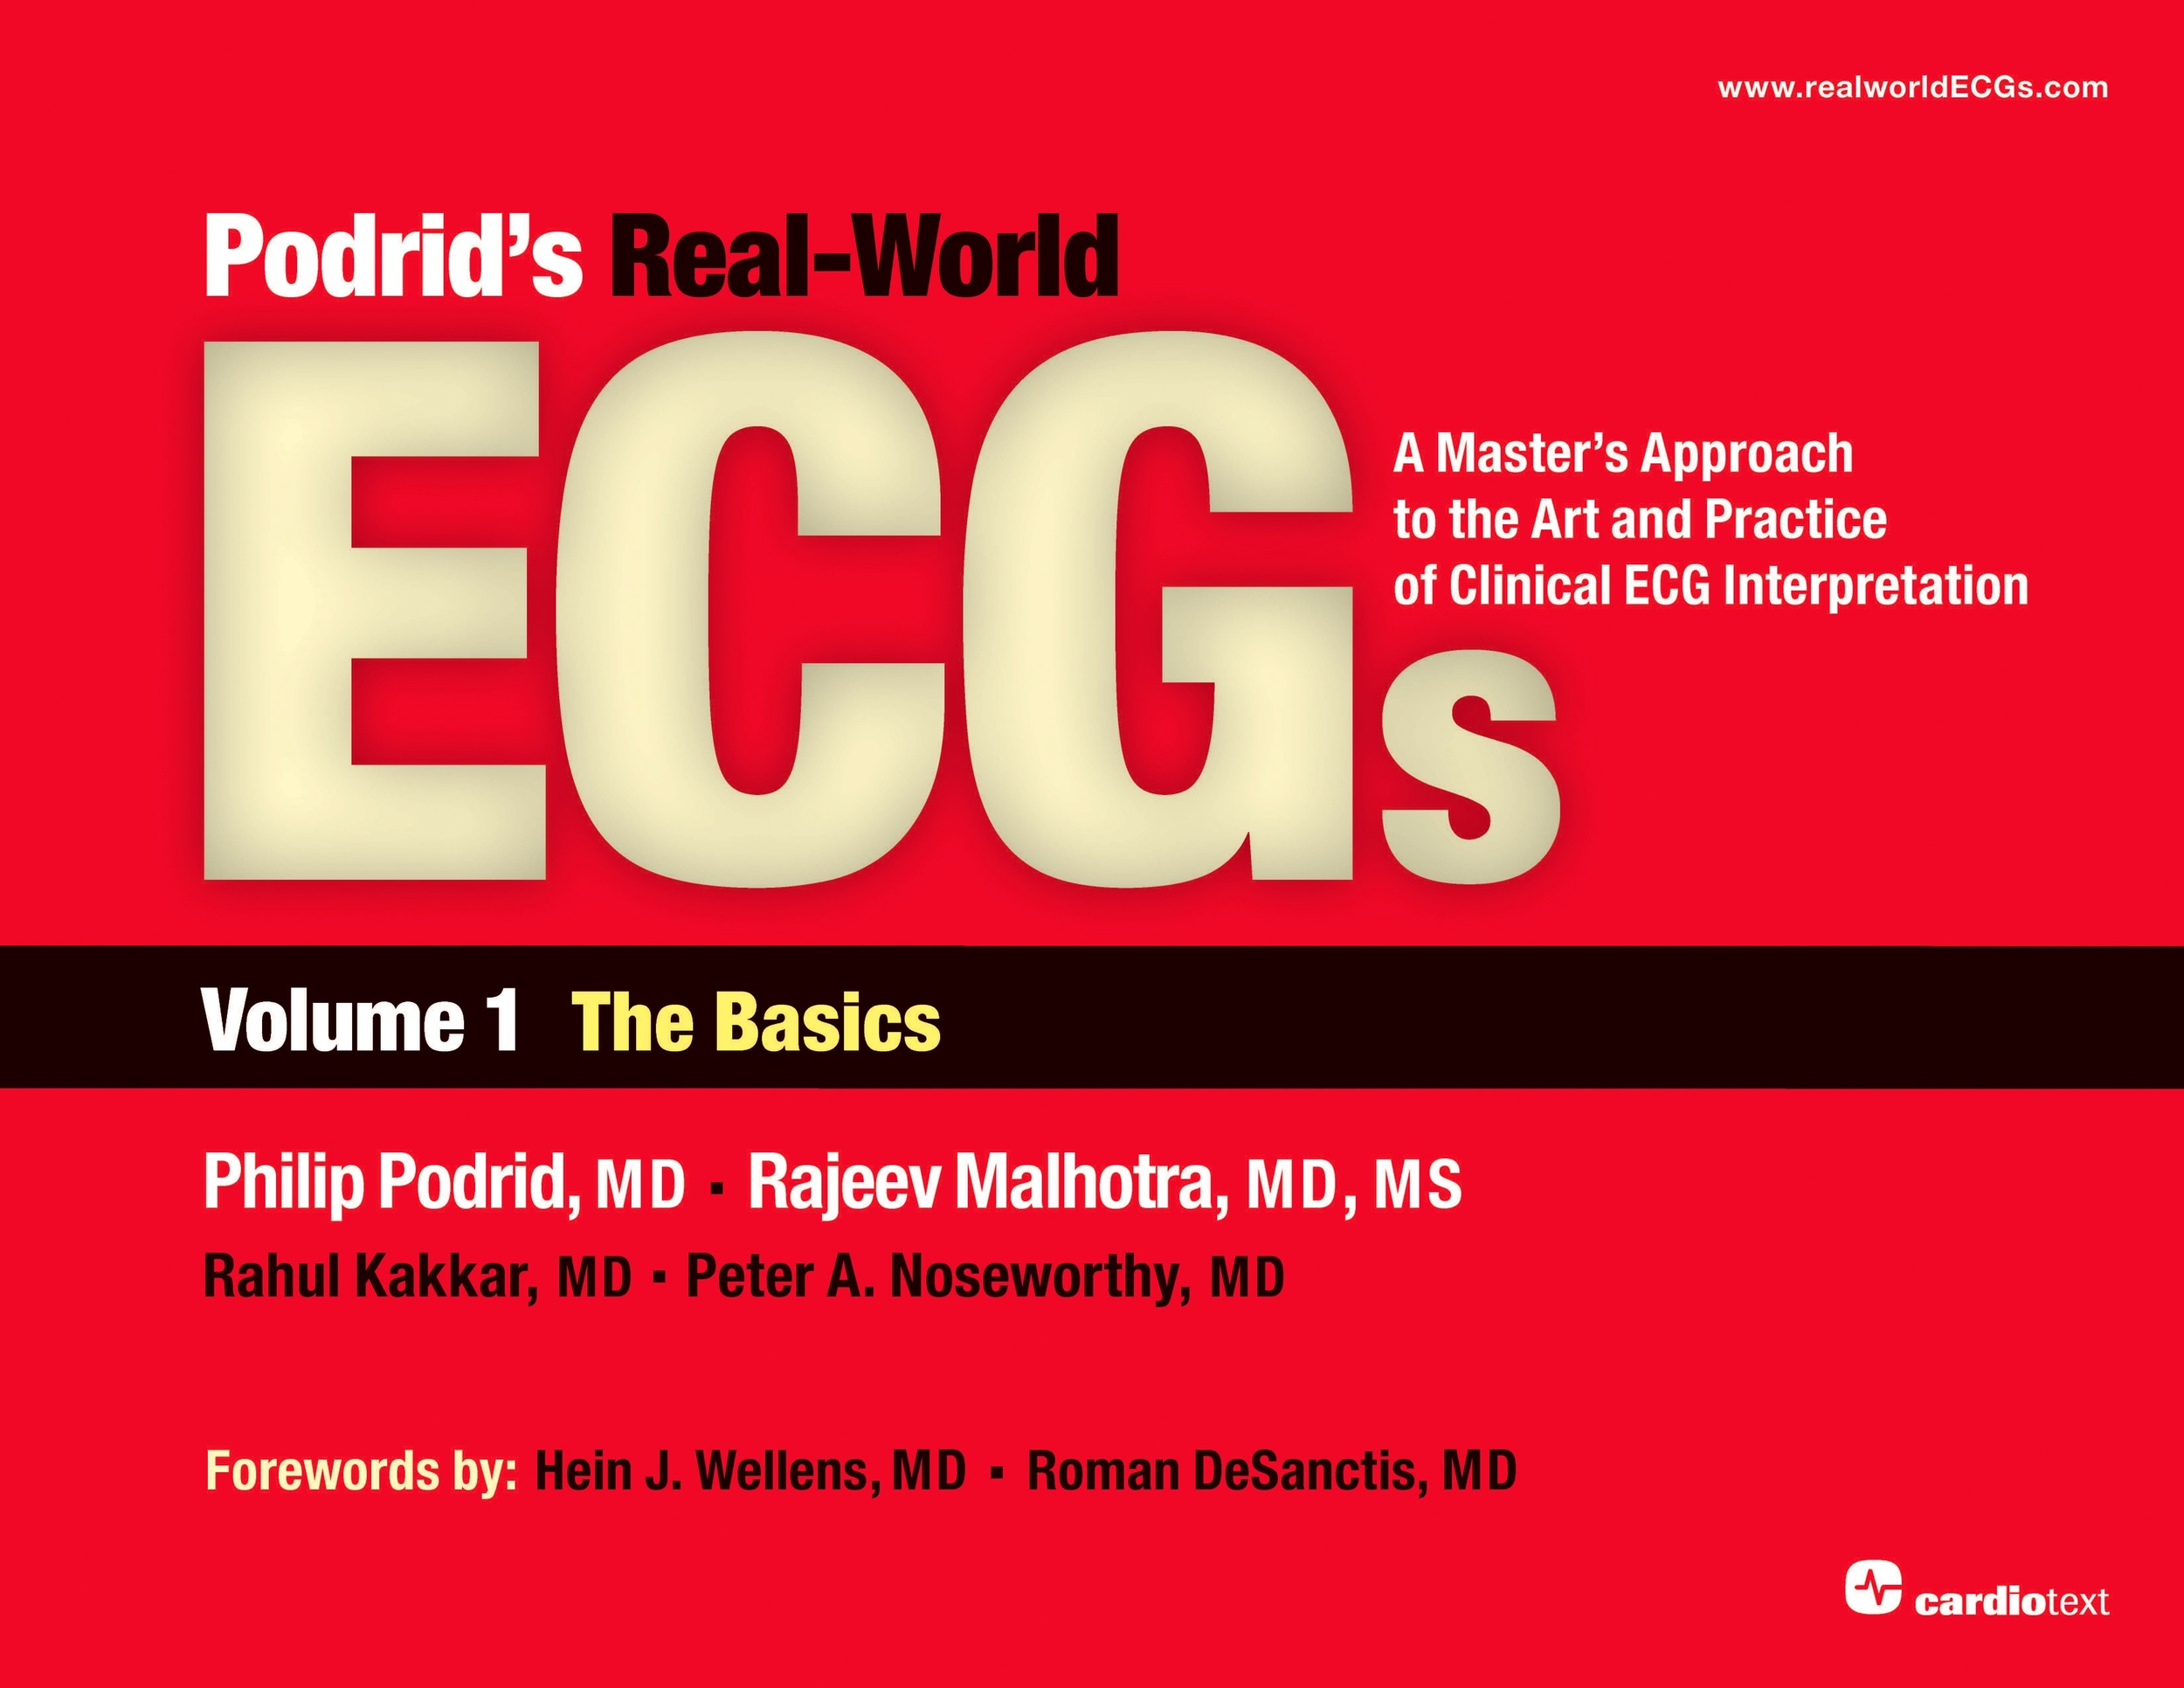 Podrid v1. Real-World ECGs Basics